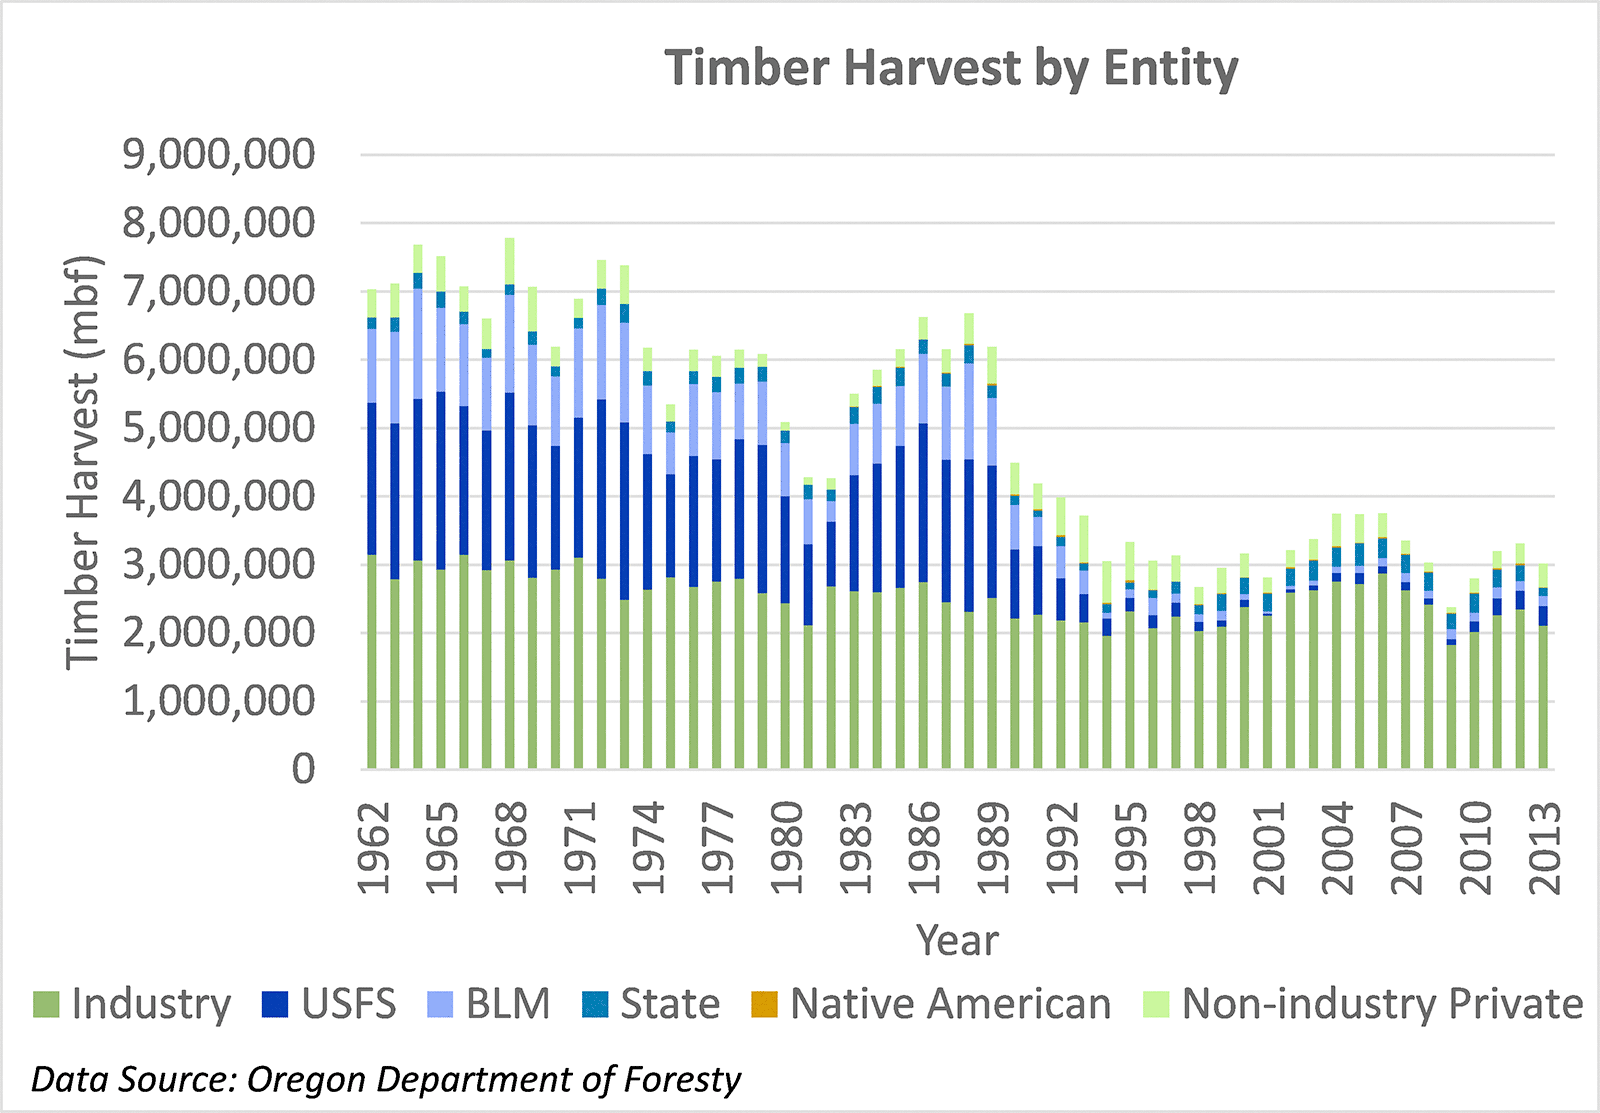 Timber Harvest by Type of Entity